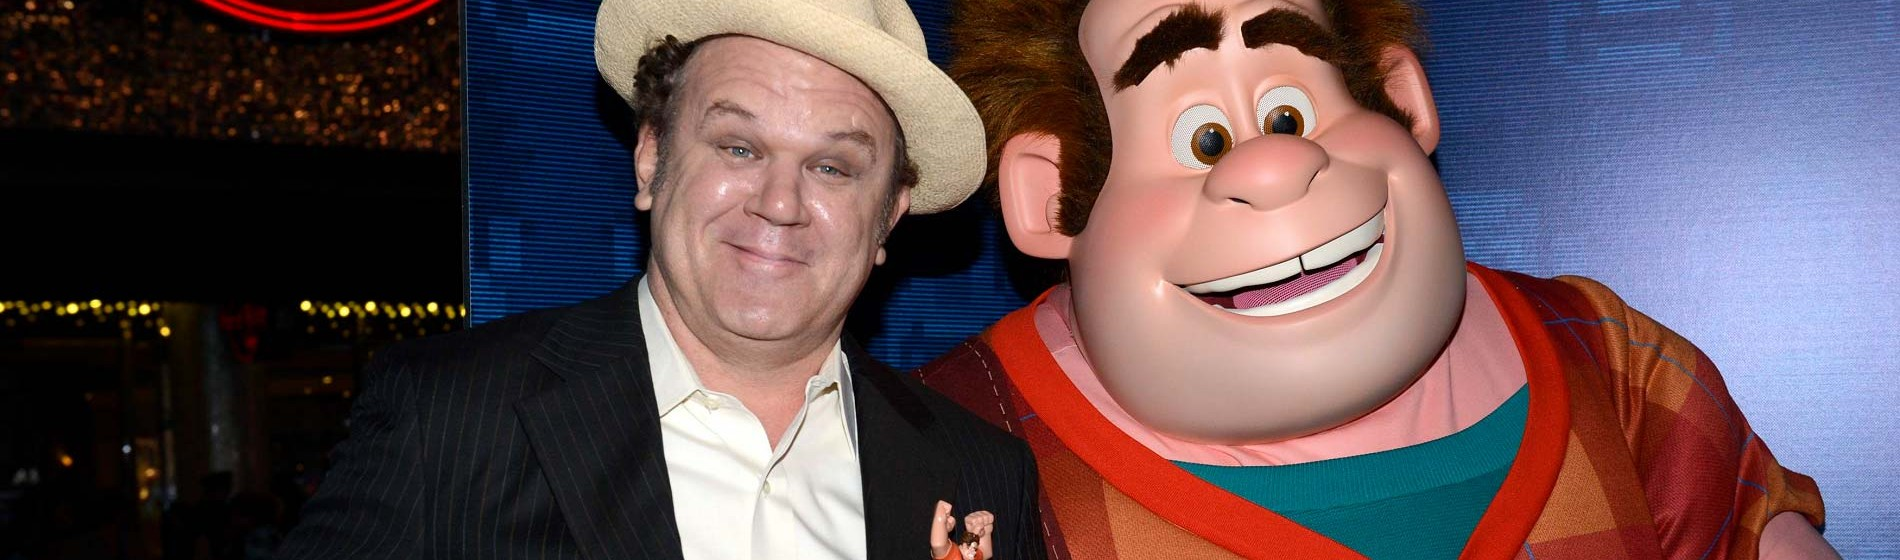 John C. Reilly Wreck-It-Ralph